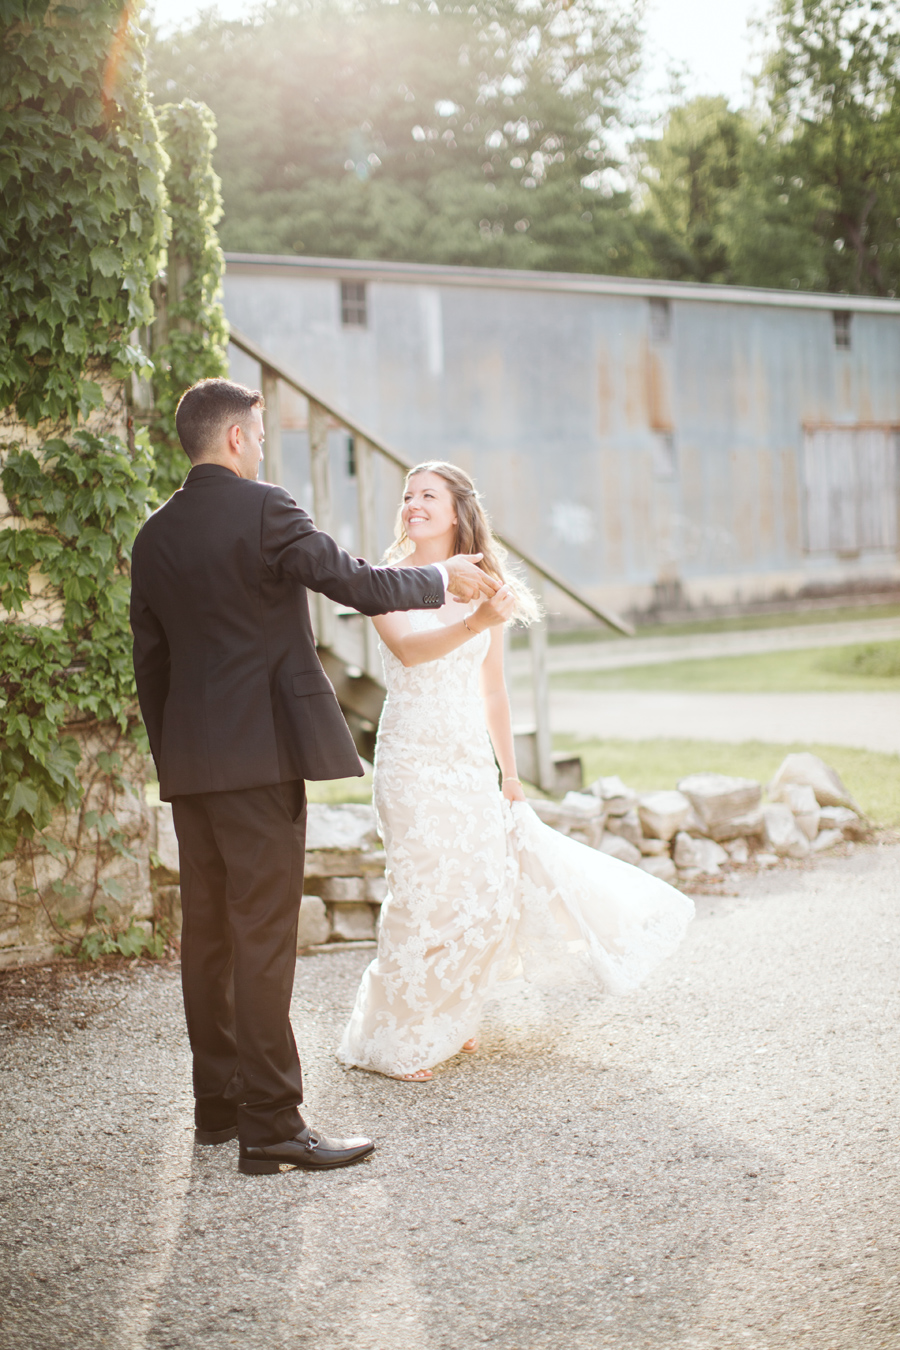 puya colleen s classic wedding at the lageret stoughton wi